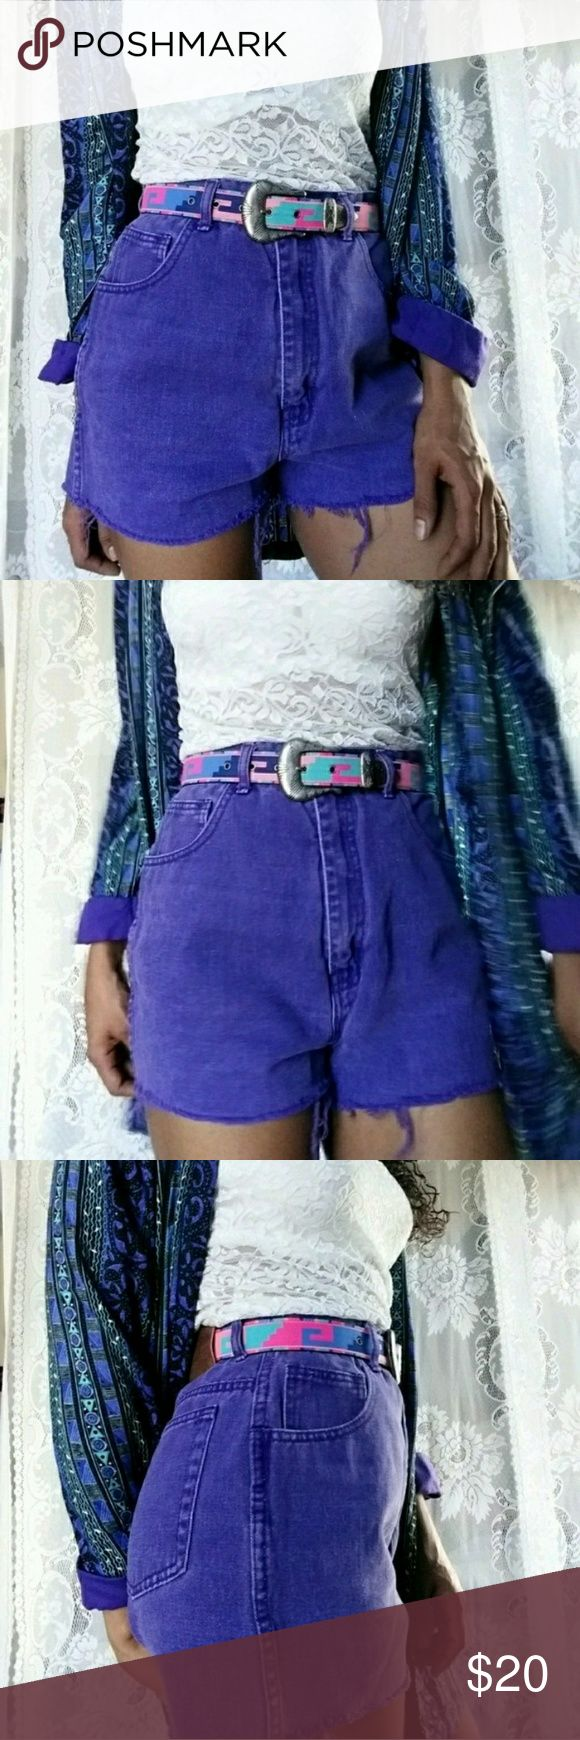 ▪Vintage▪ Purpose high Waisted shorts Message me with questions for a faster response :)  *Make an offer you might get a great deal! Ask about bundles♡♡♡  ♡•VINTAGE ITEM!!•♡   Purple denim High waisted shorts. In great condition, no visible flaws.   MEASUREMENTS (laying flat)  Waist: 14 inches  Hips: 18 and a half inches  Lenght: 14 inches   #purple #shorts #vintage #grunge #highwaitstedshorts #purpledenim #jeanshorts #purpleshorts #womensclothing Vintage Shorts Jean Shorts